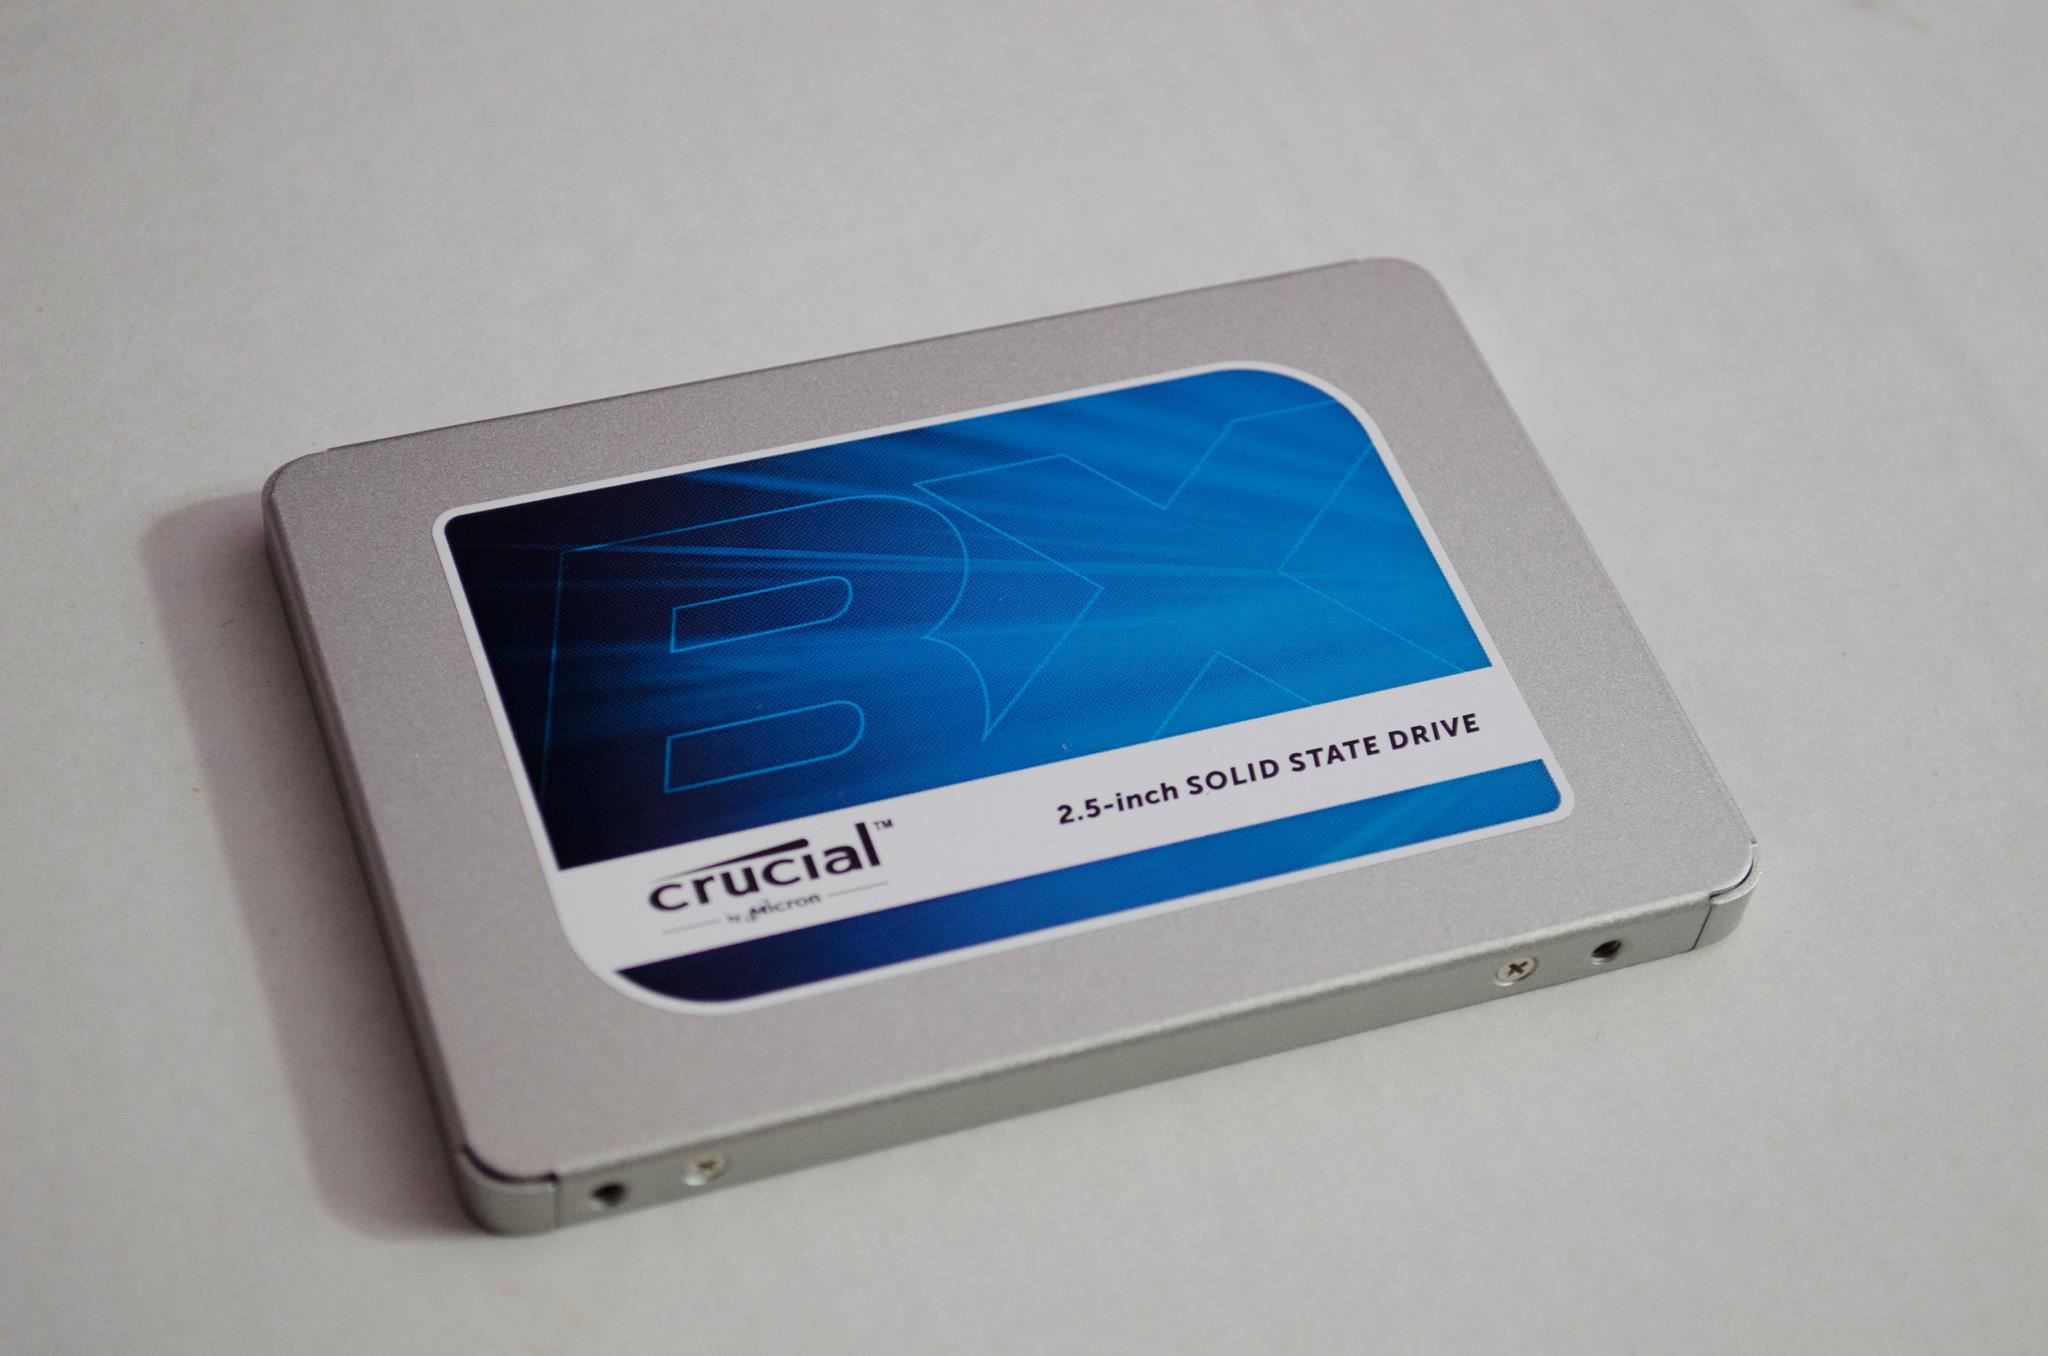 Crucial BX300 240GB SSD Review